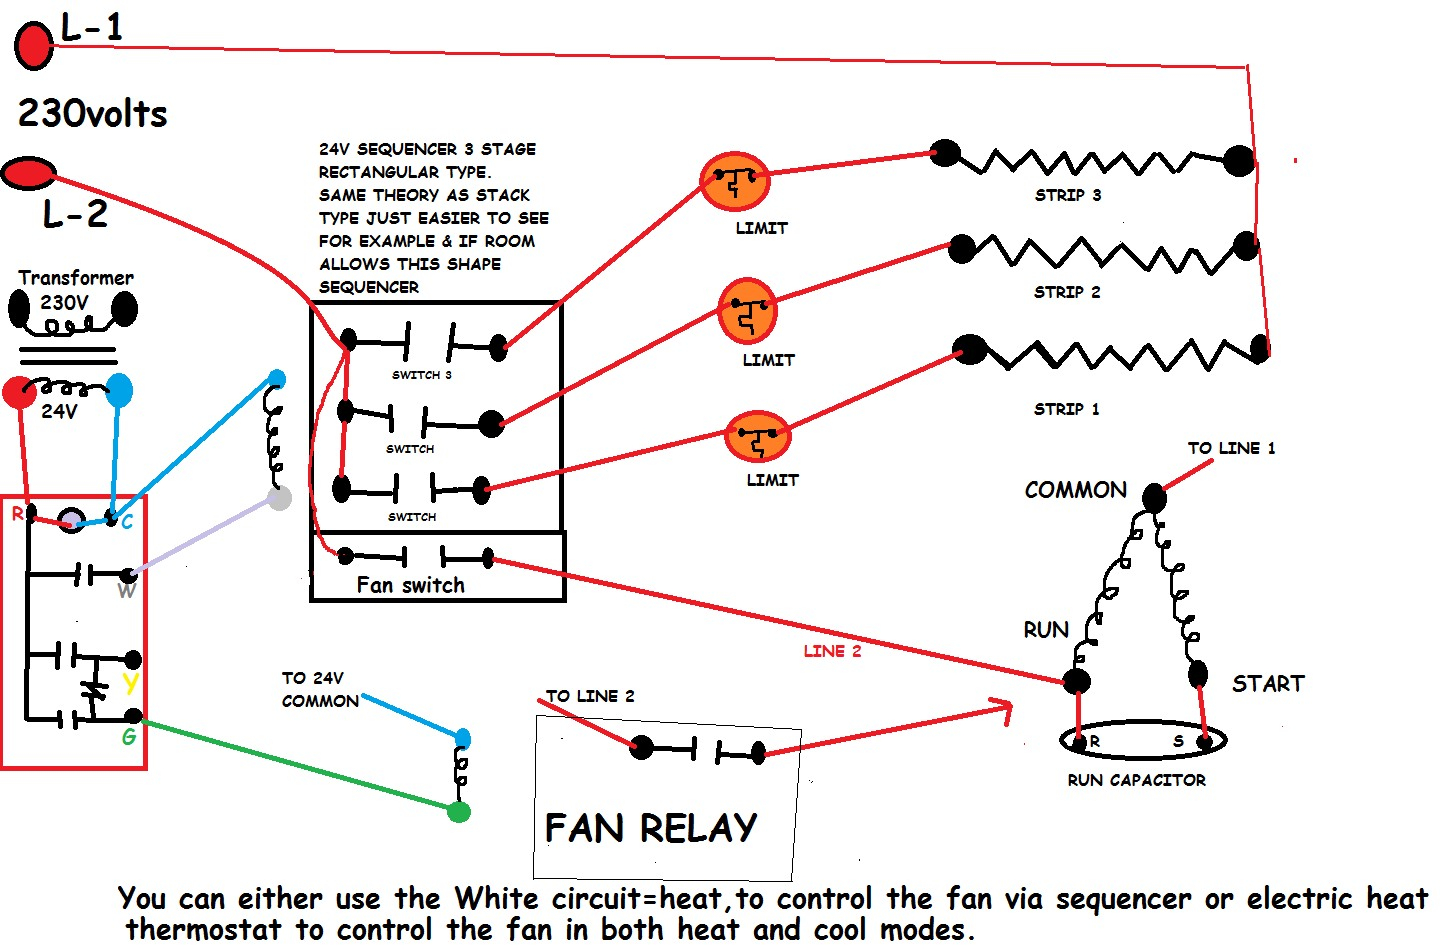 furnace fan relay wiring diagram Collection-Fan Relay Wiring Diagram Fresh  Diagram Furnace · Heat. DOWNLOAD. Wiring Diagram ...